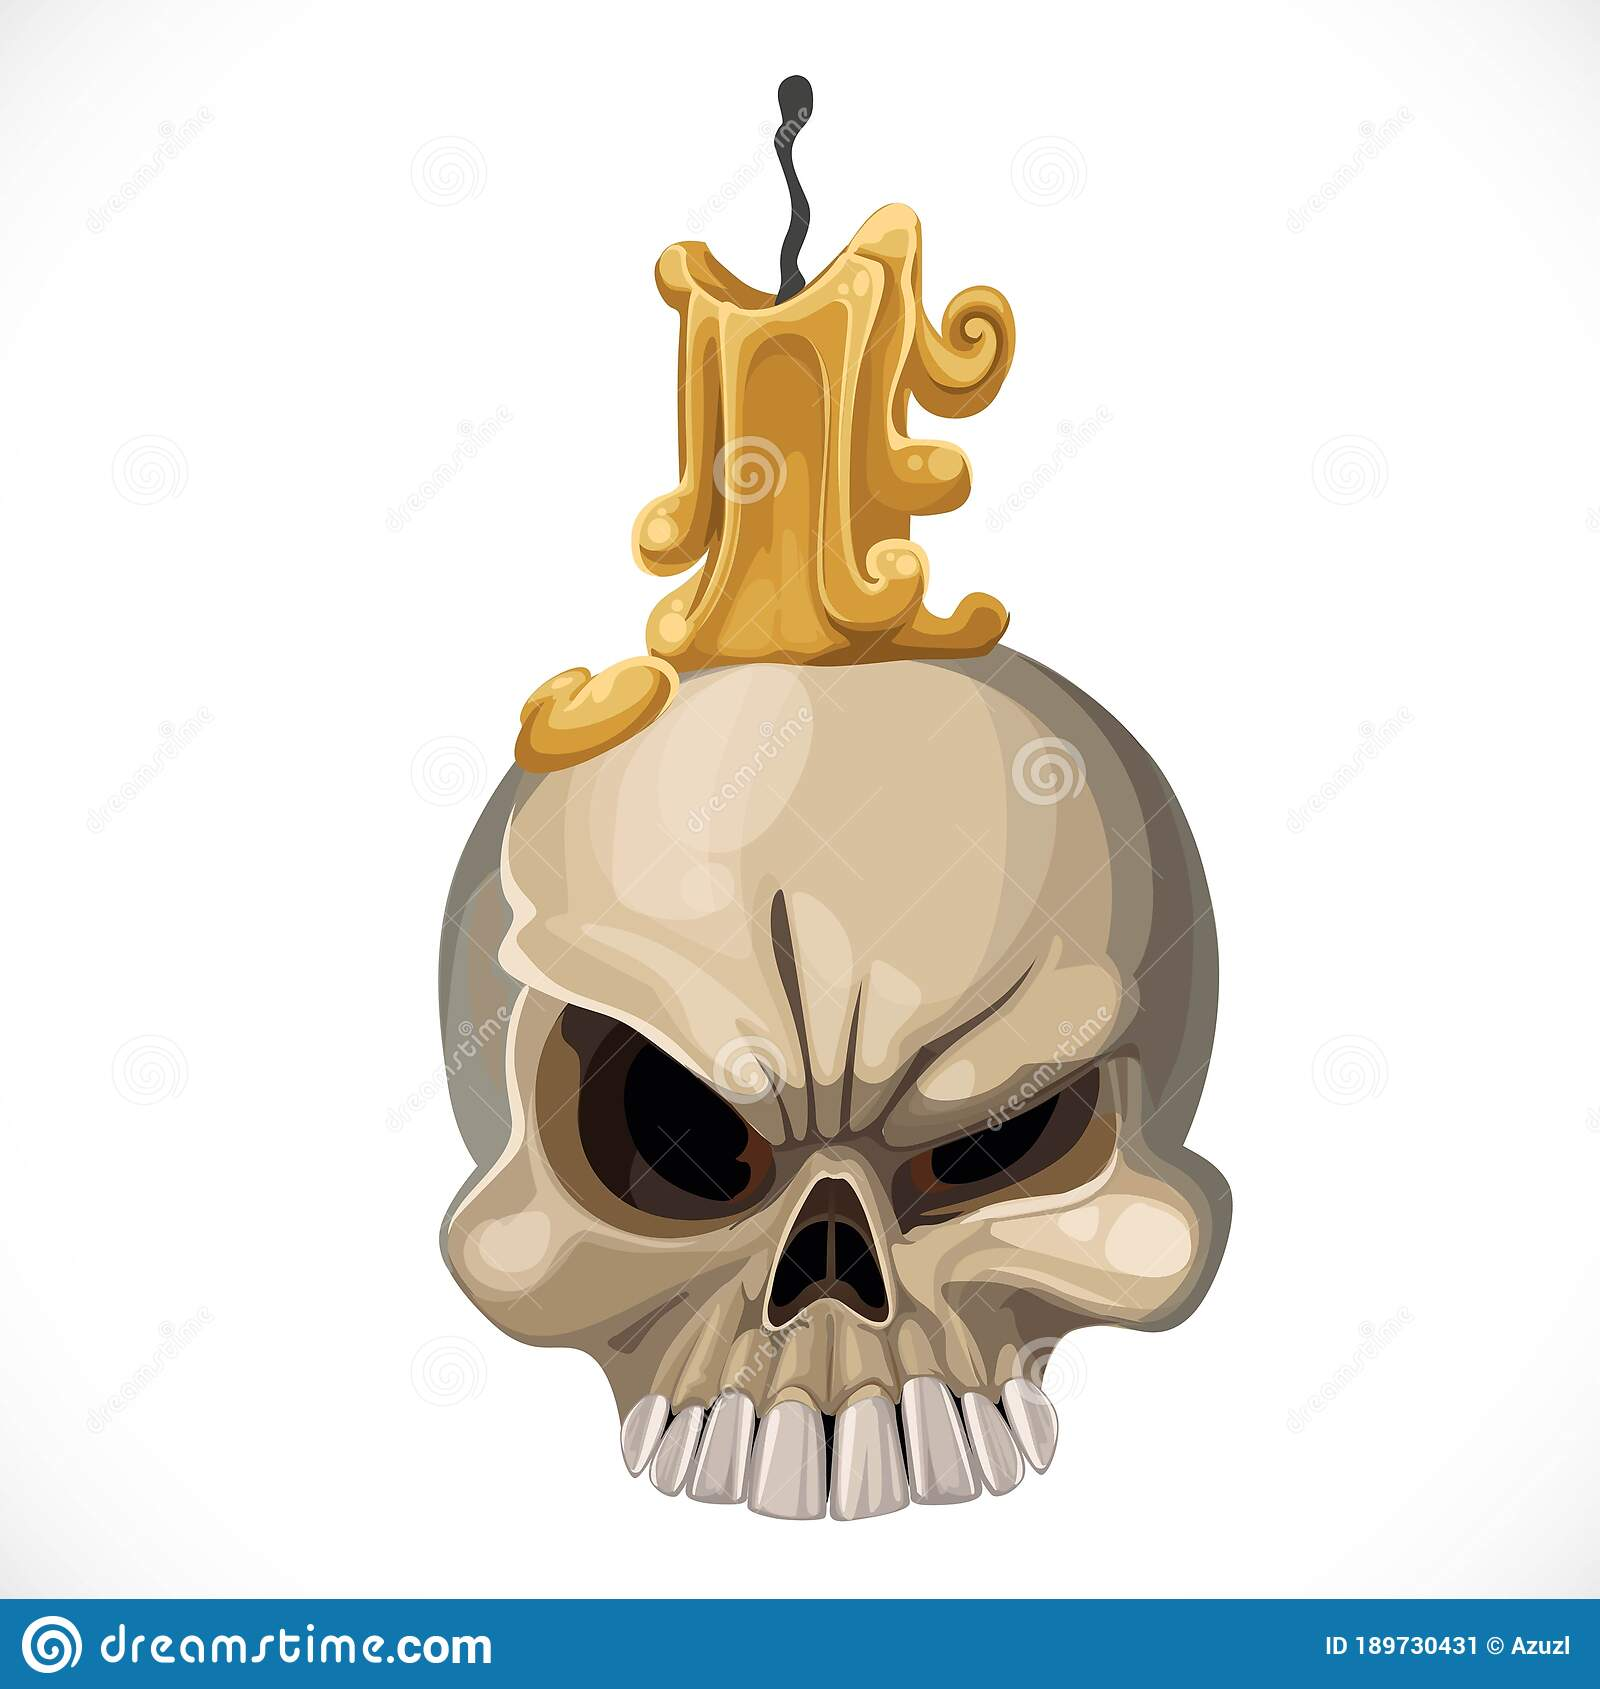 Cute Skull Candle Holder With A Candle On Top Stock Vector Illustration Of Scary Warning 189730431